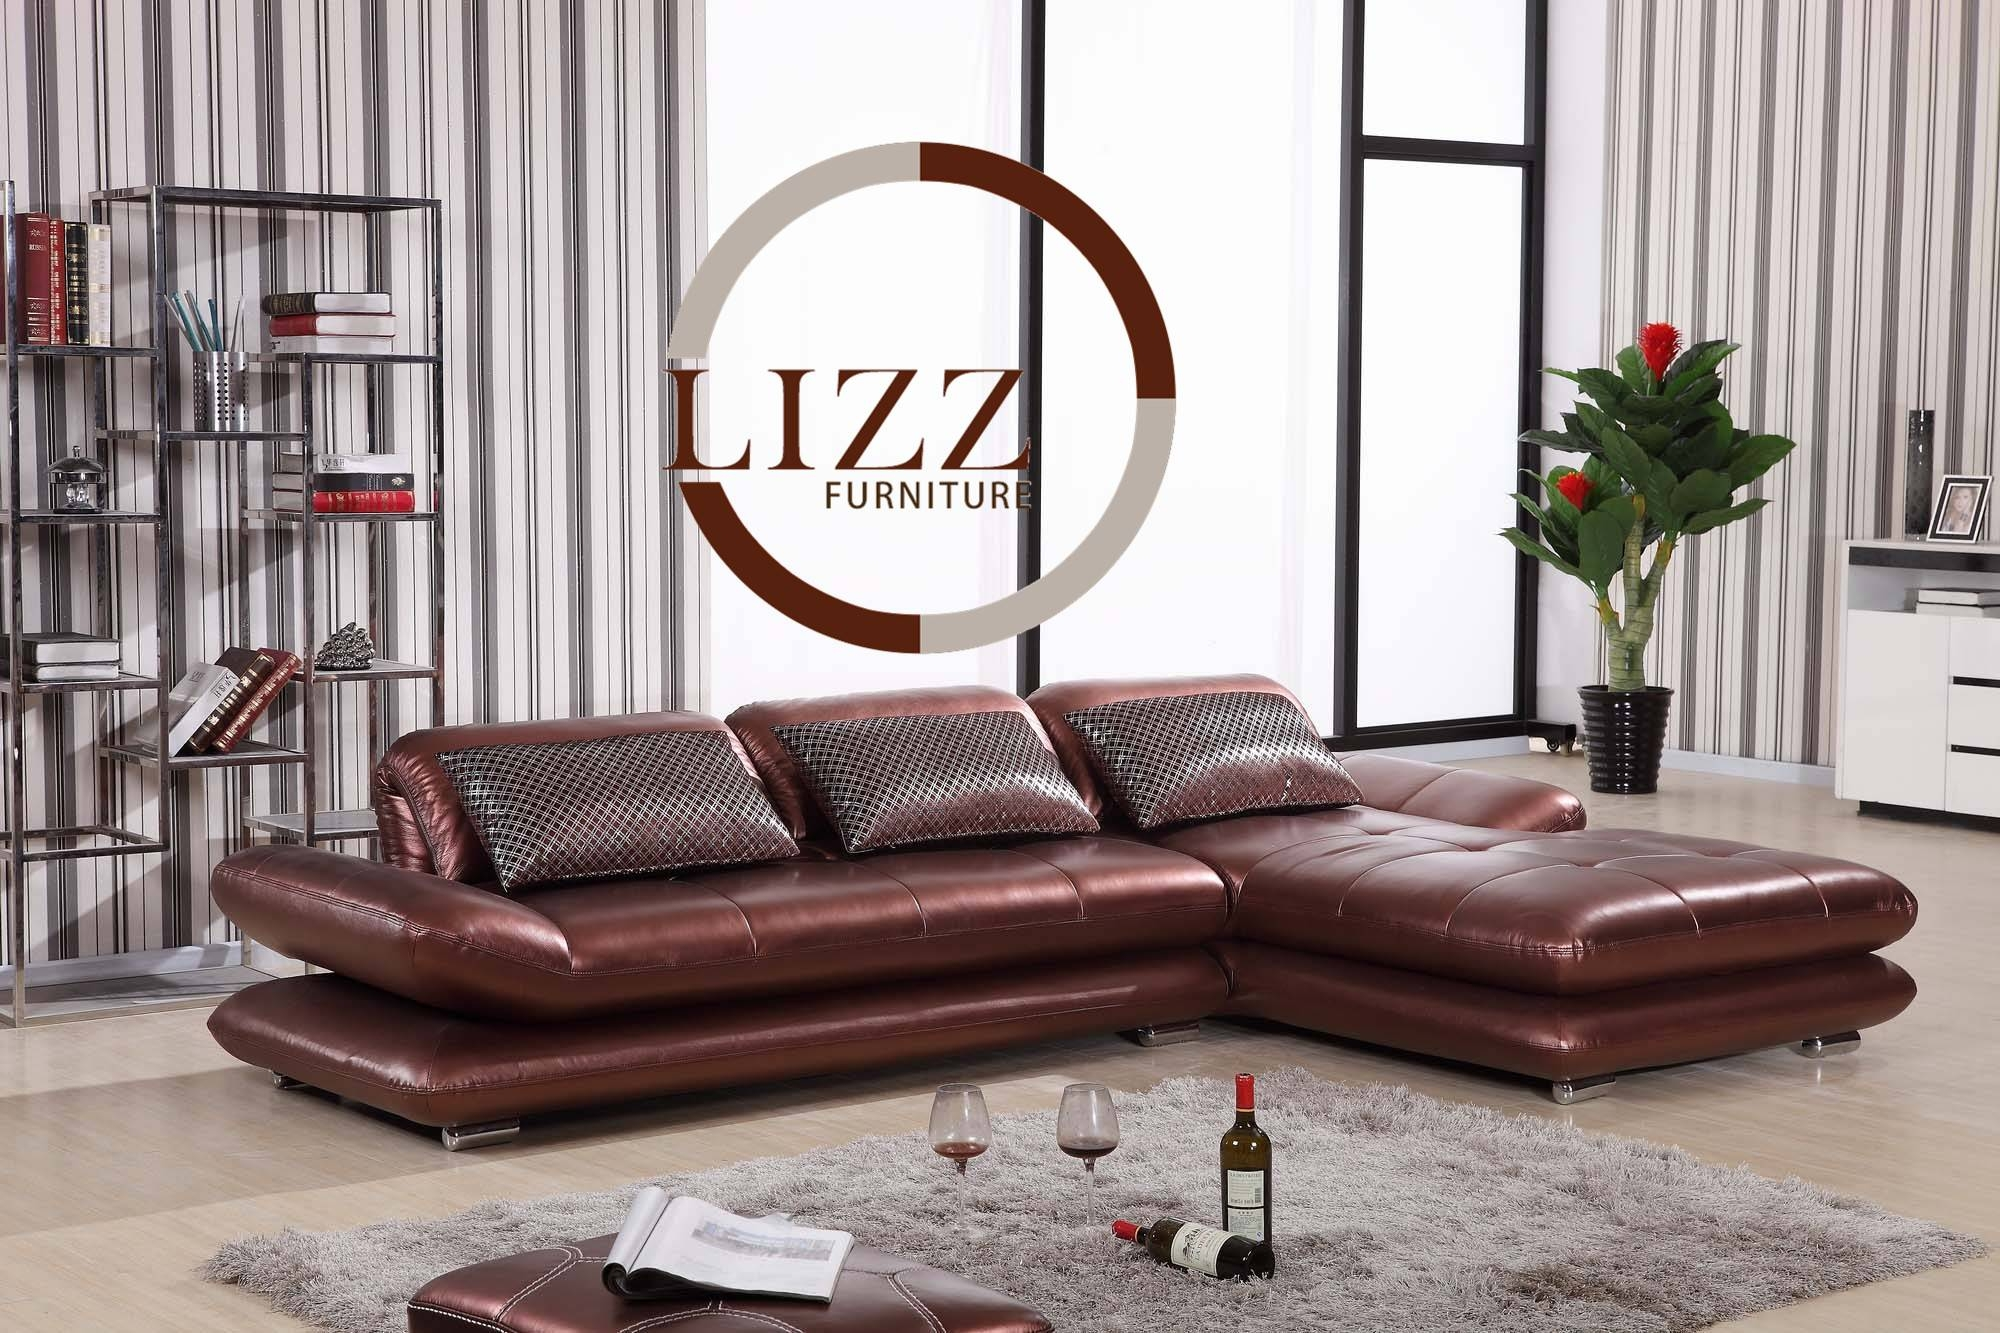 Leather Sofa With Regard To European Leather Sofas (Photo 9 of 30)